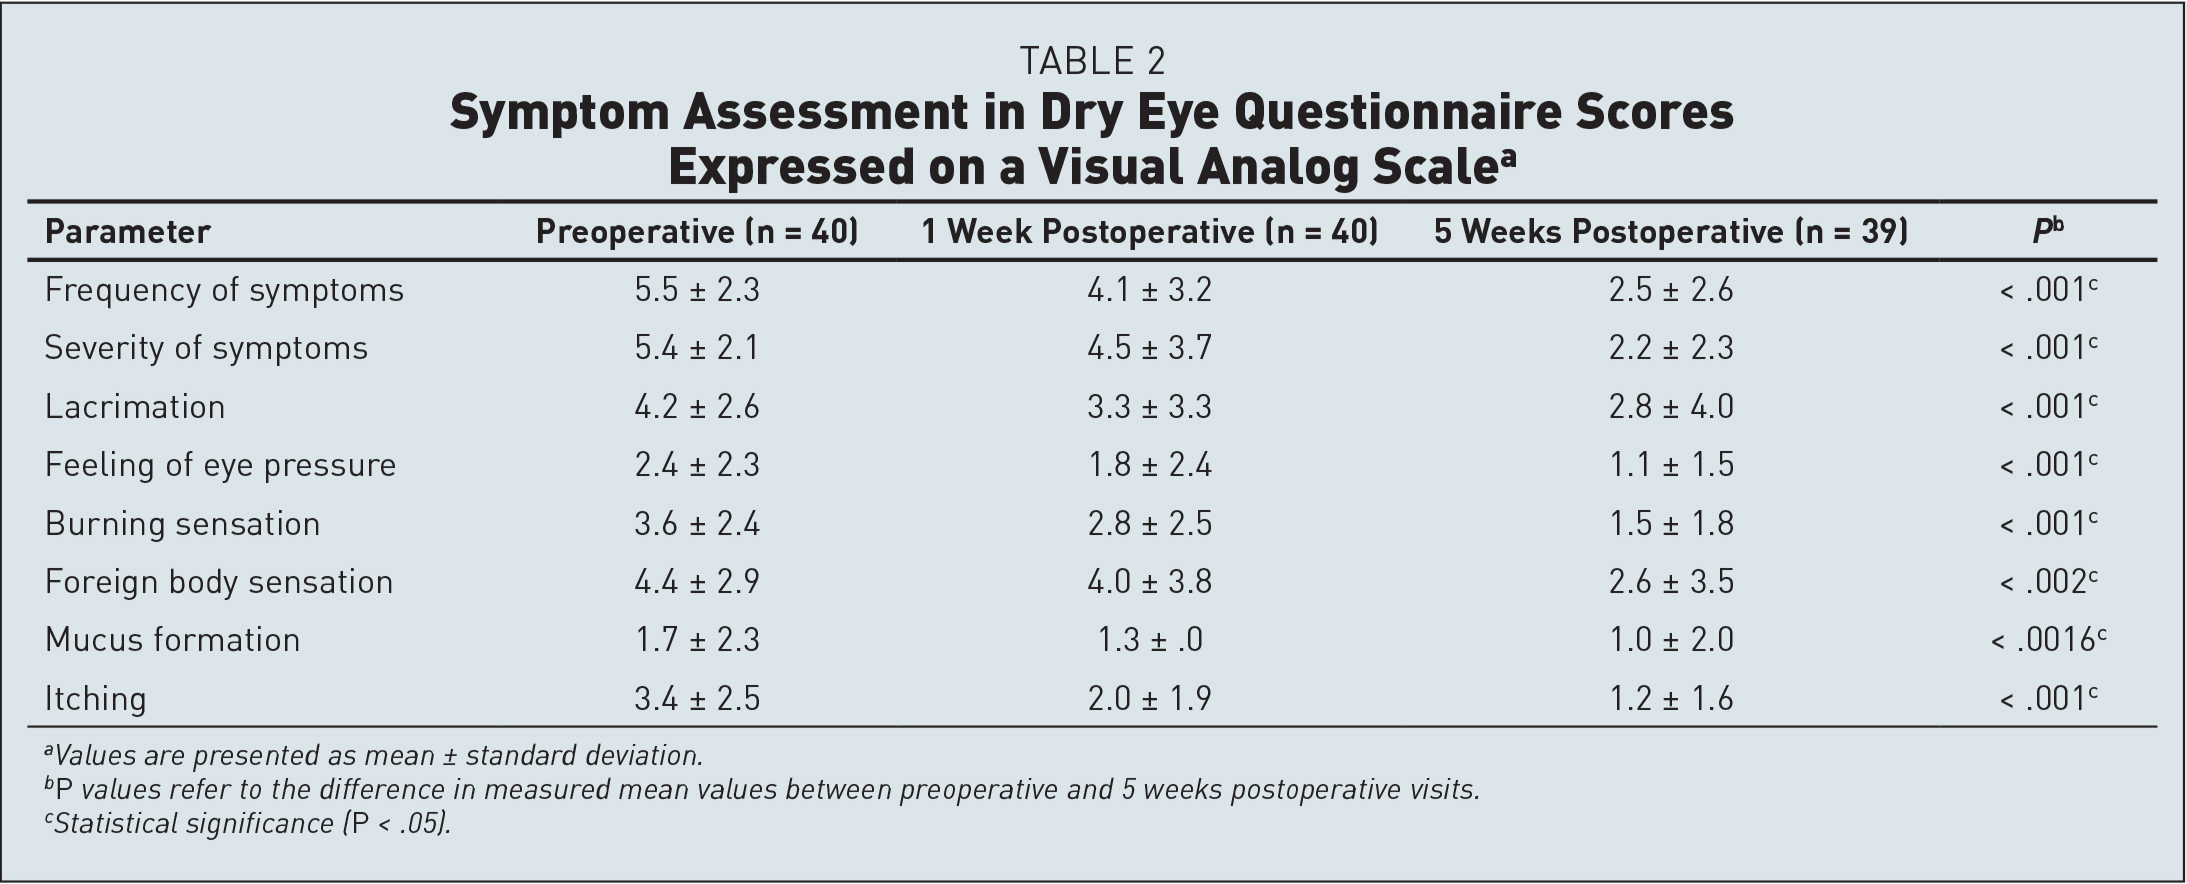 Symptom Assessment in Dry Eye Questionnaire Scores Expressed on a Visual Analog Scalea